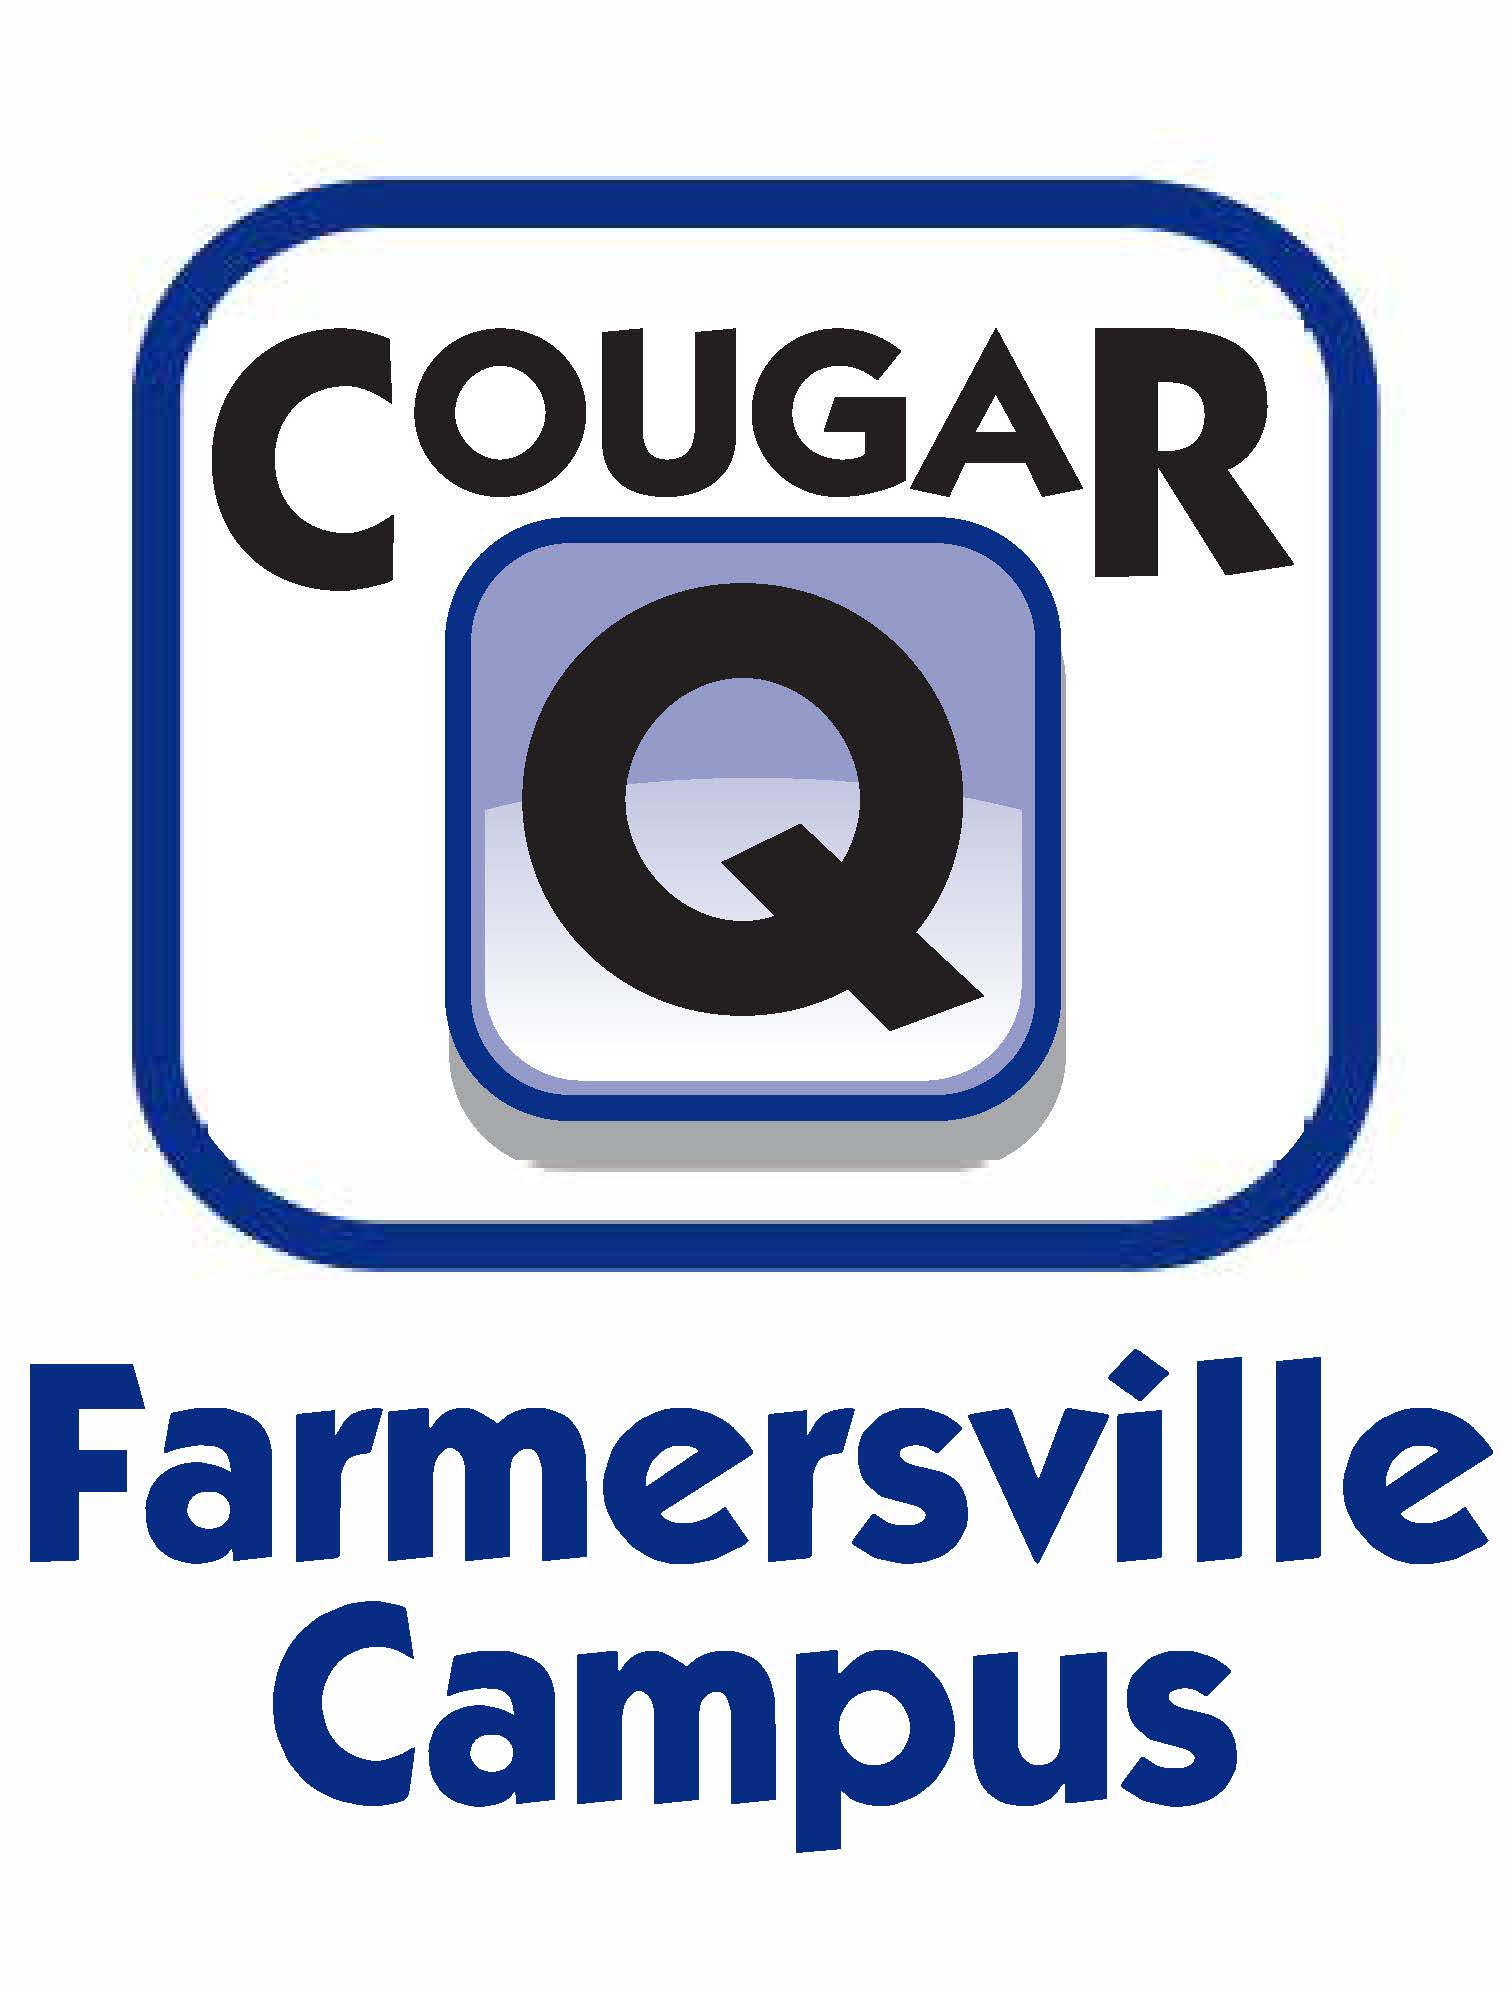 Farmersville CougarQ Sign In